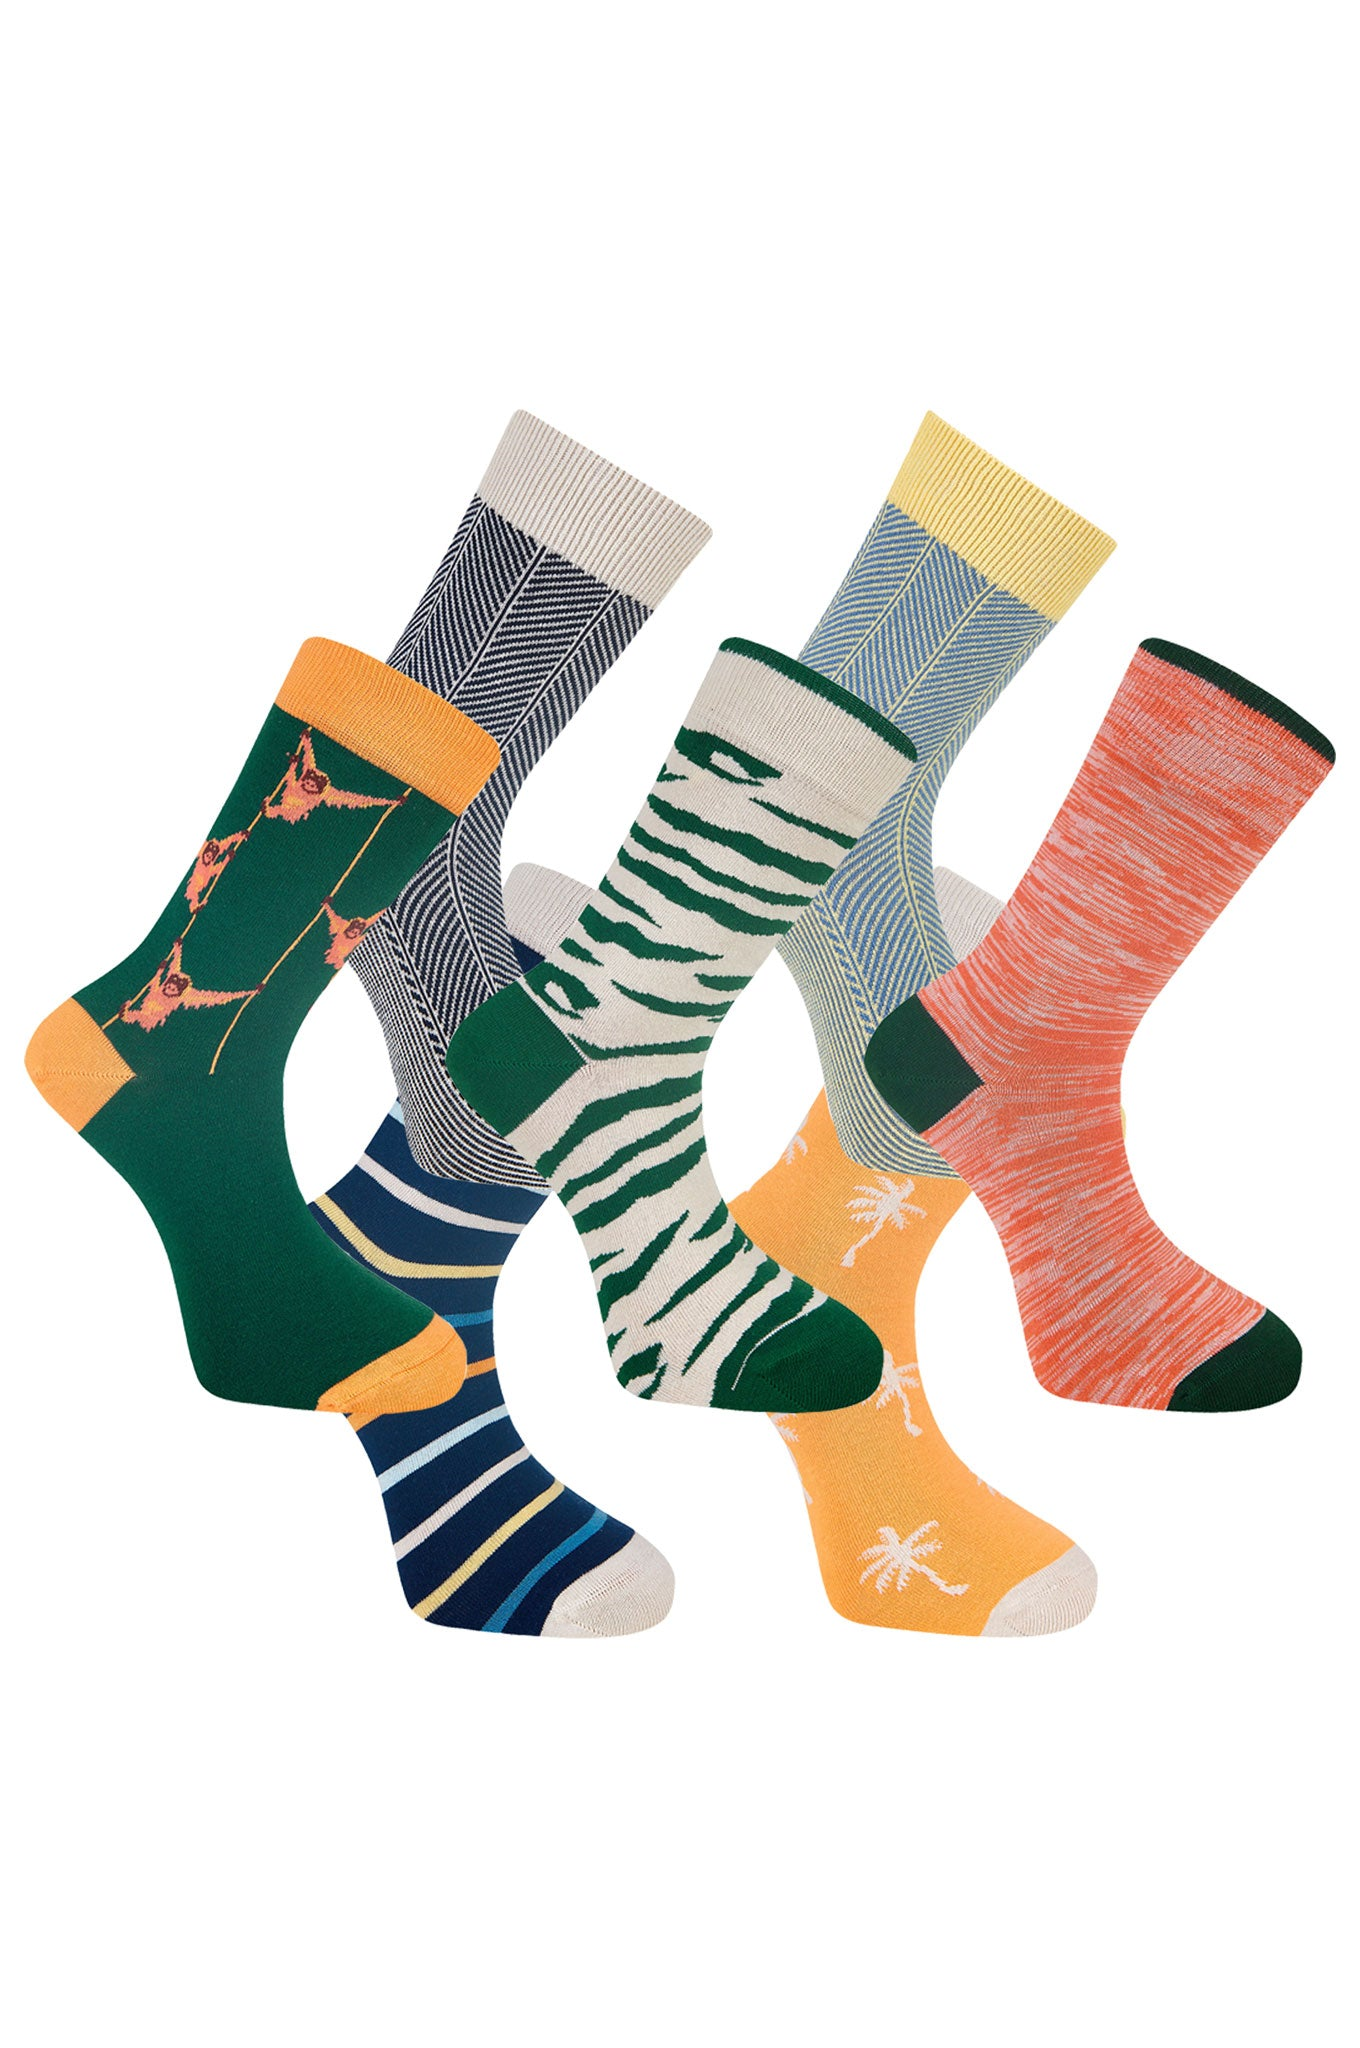 LUCKY DIP - GOTS  Organic Cotton Sock Bundle (7 Pairs)